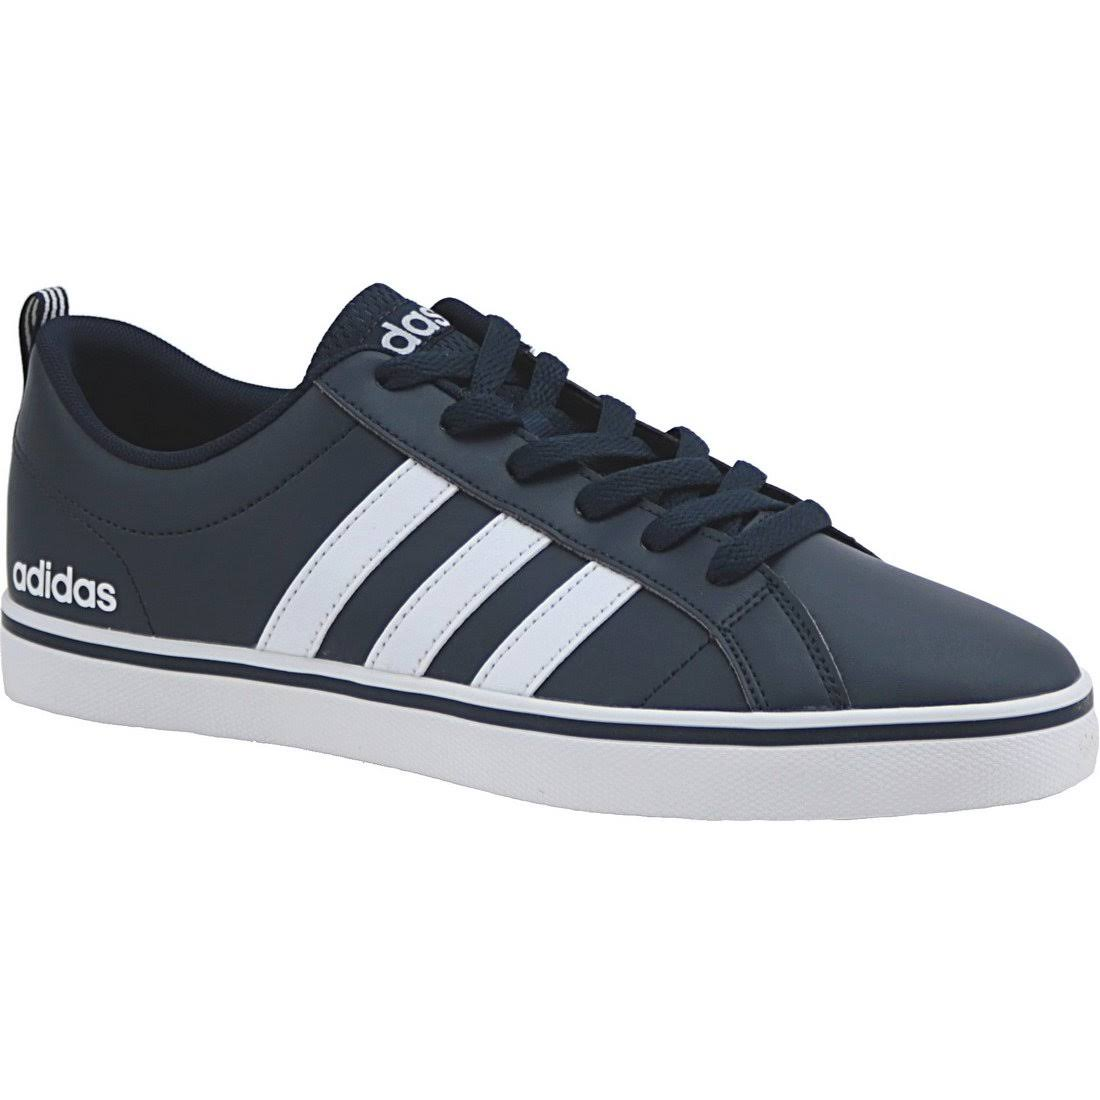 (10.5) Adidas VS Pace B74493 Mens Navy Blue sports shoes